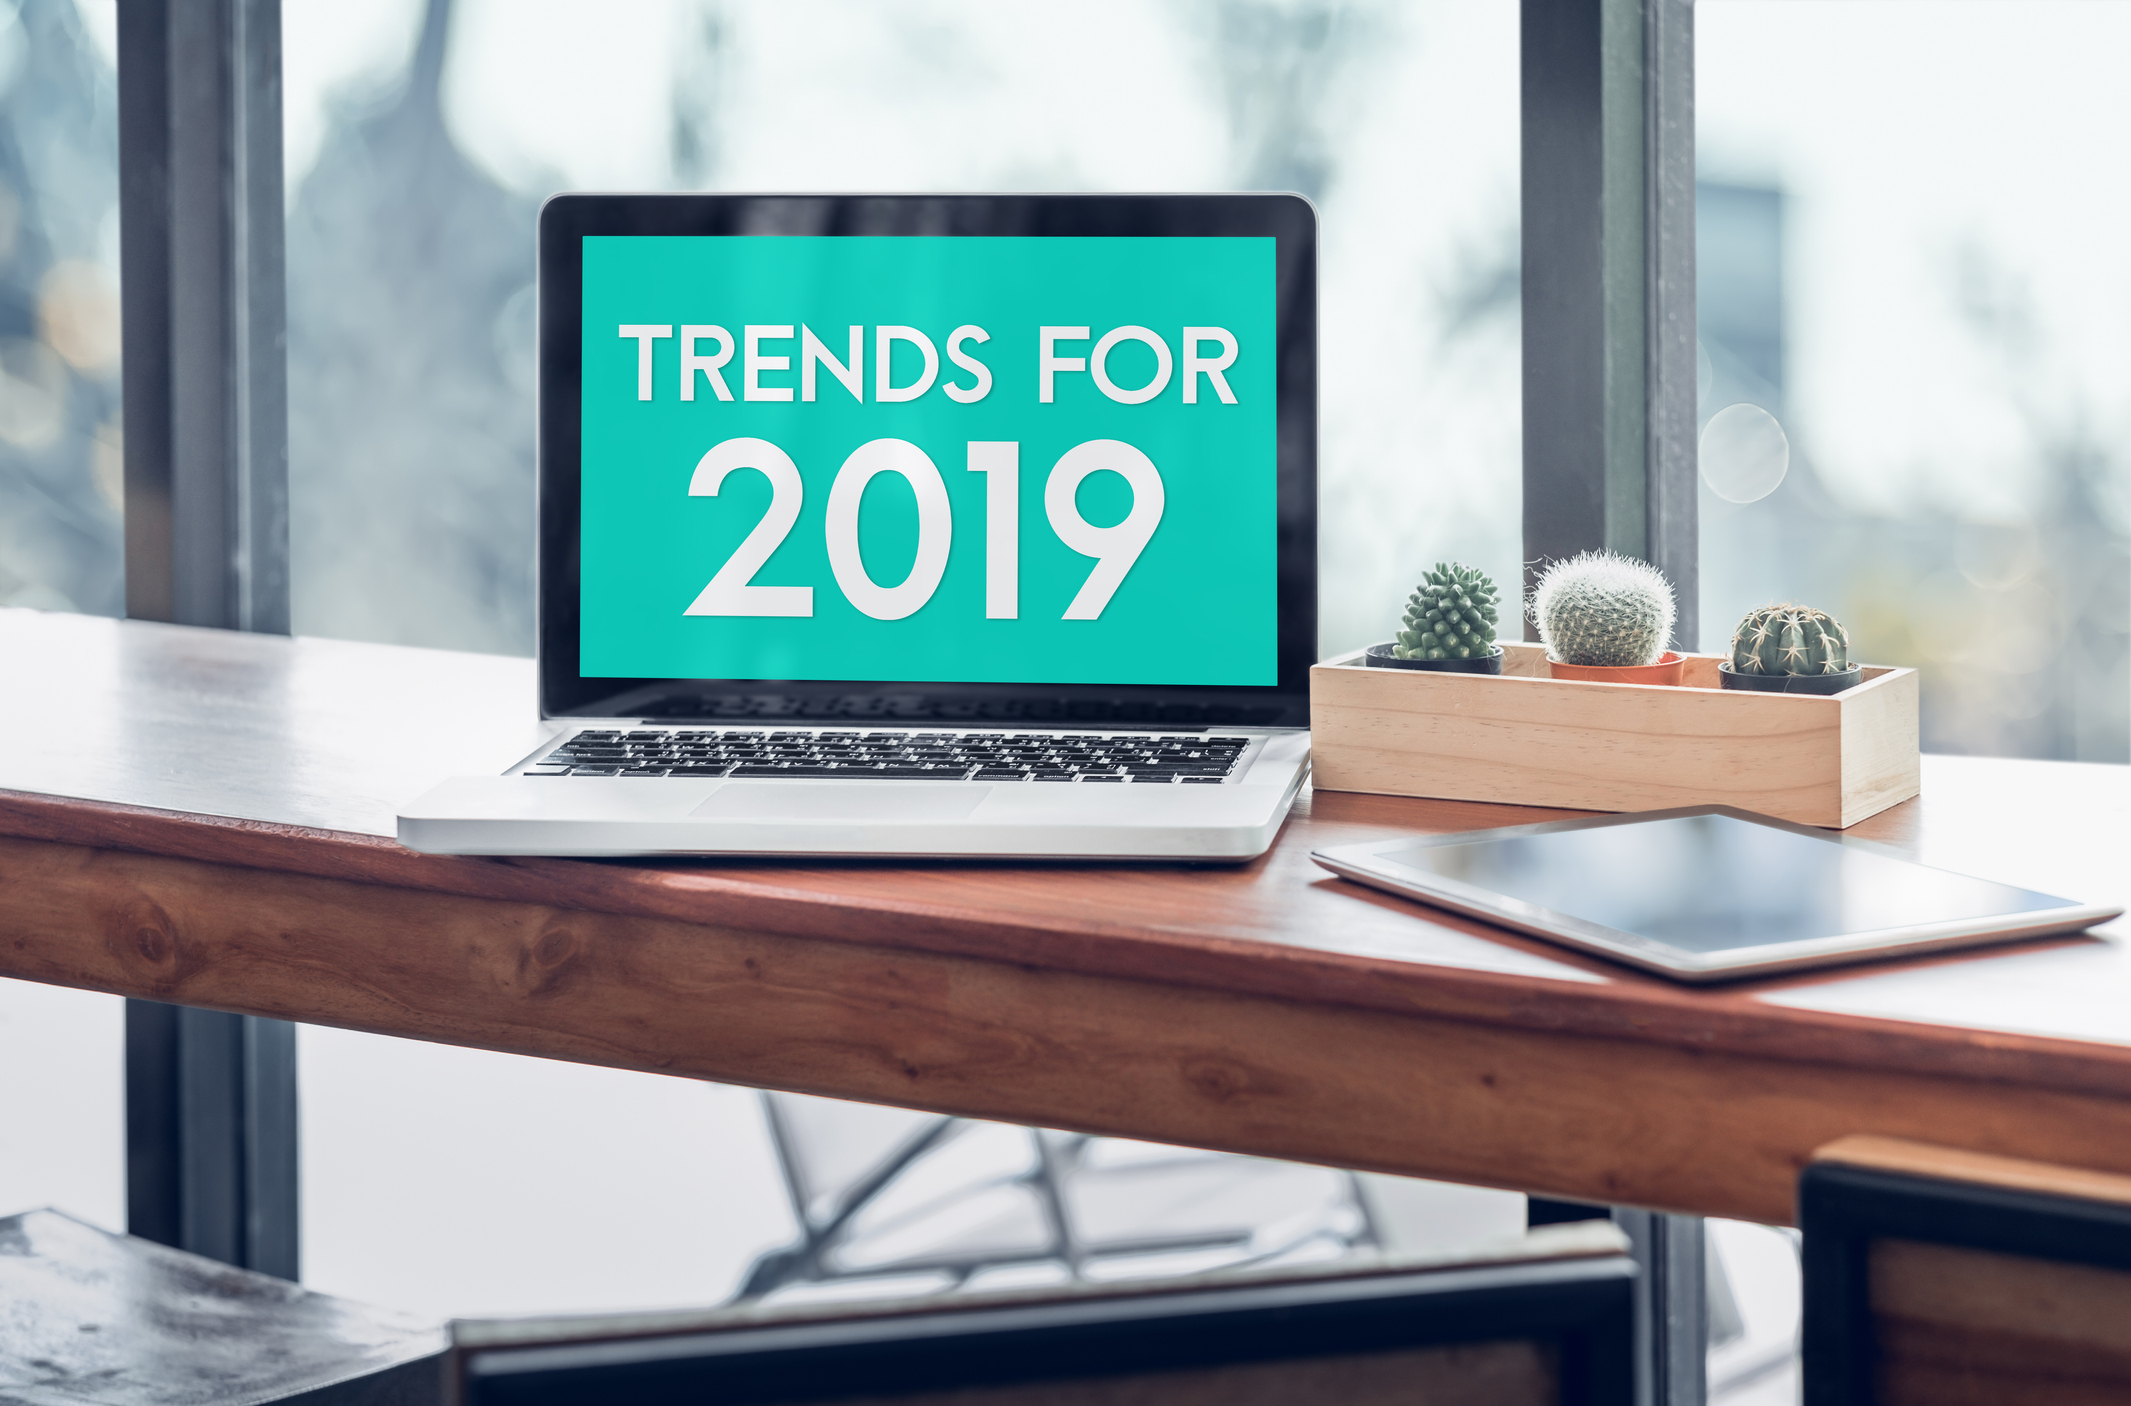 5-leading-web-and-graphic-design-trends-for-2019